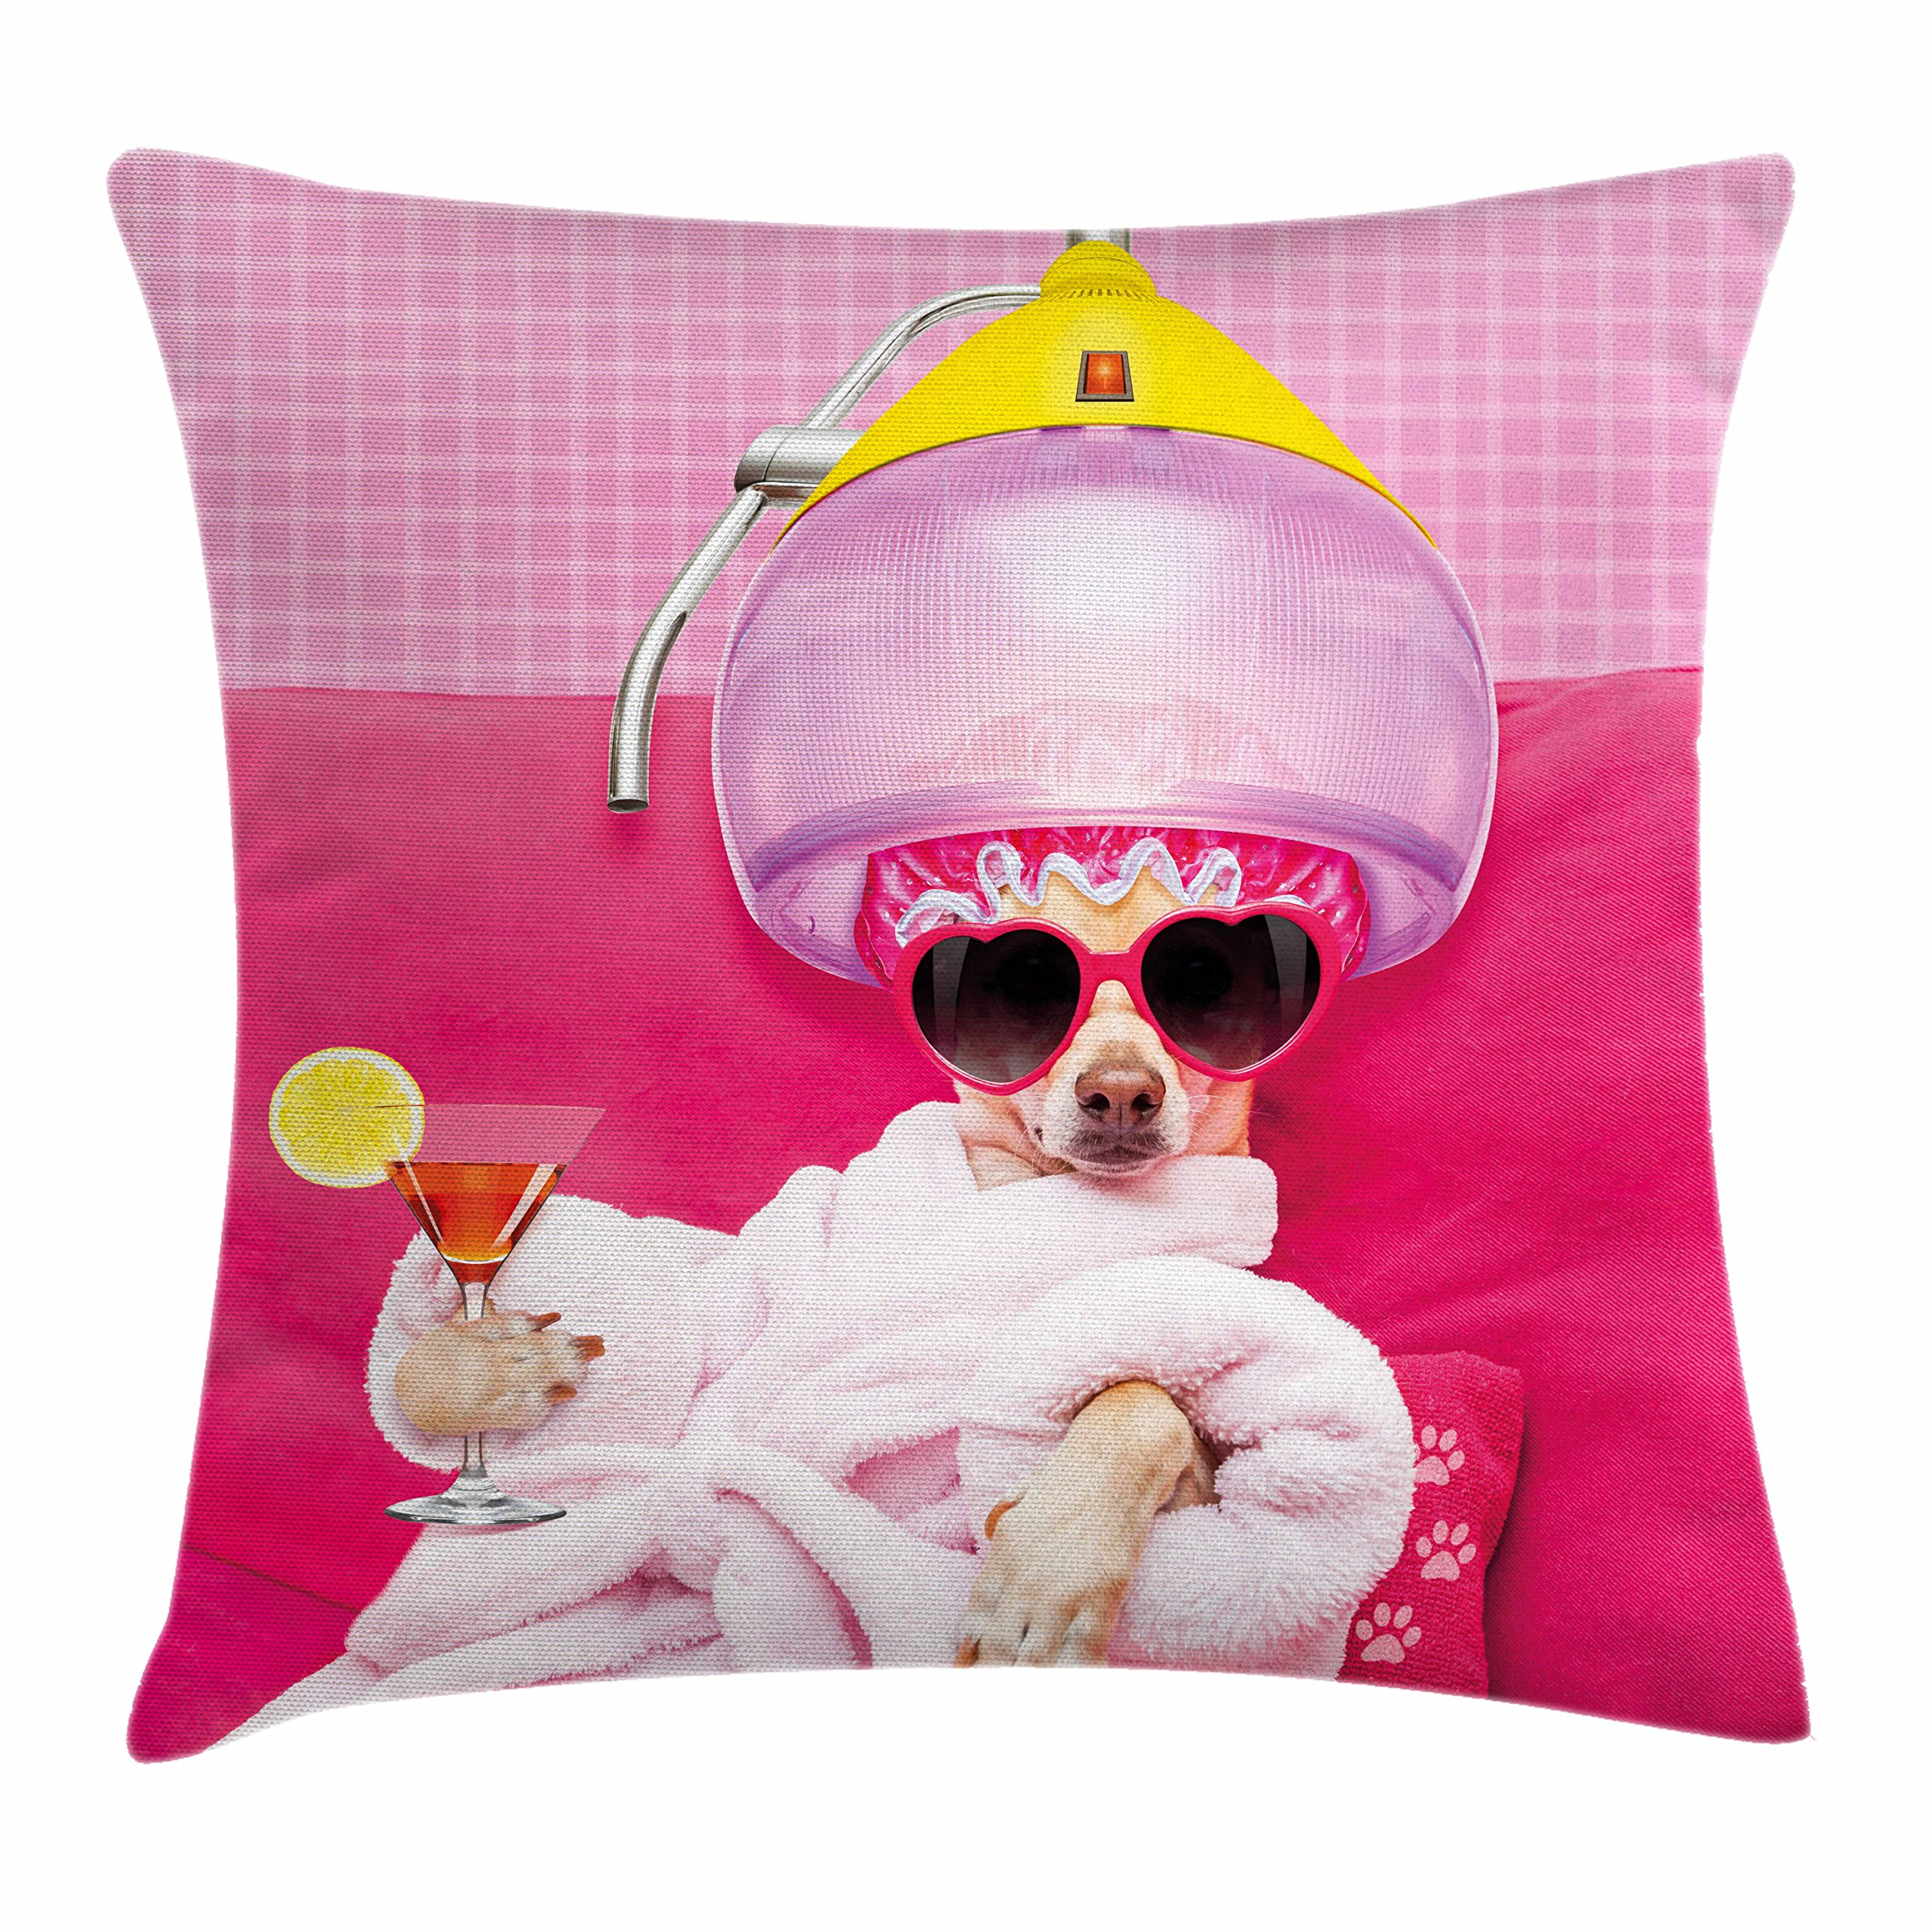 Lunarable Funny Throw Pillow Cushion Cover, Chihuahua Dog Relaxing and Lying in Wellness Spa Fashion Puppy Comic Print, Decorative Square Accent Pillow Case, 28 X 28 inches, Magenta Baby Pink